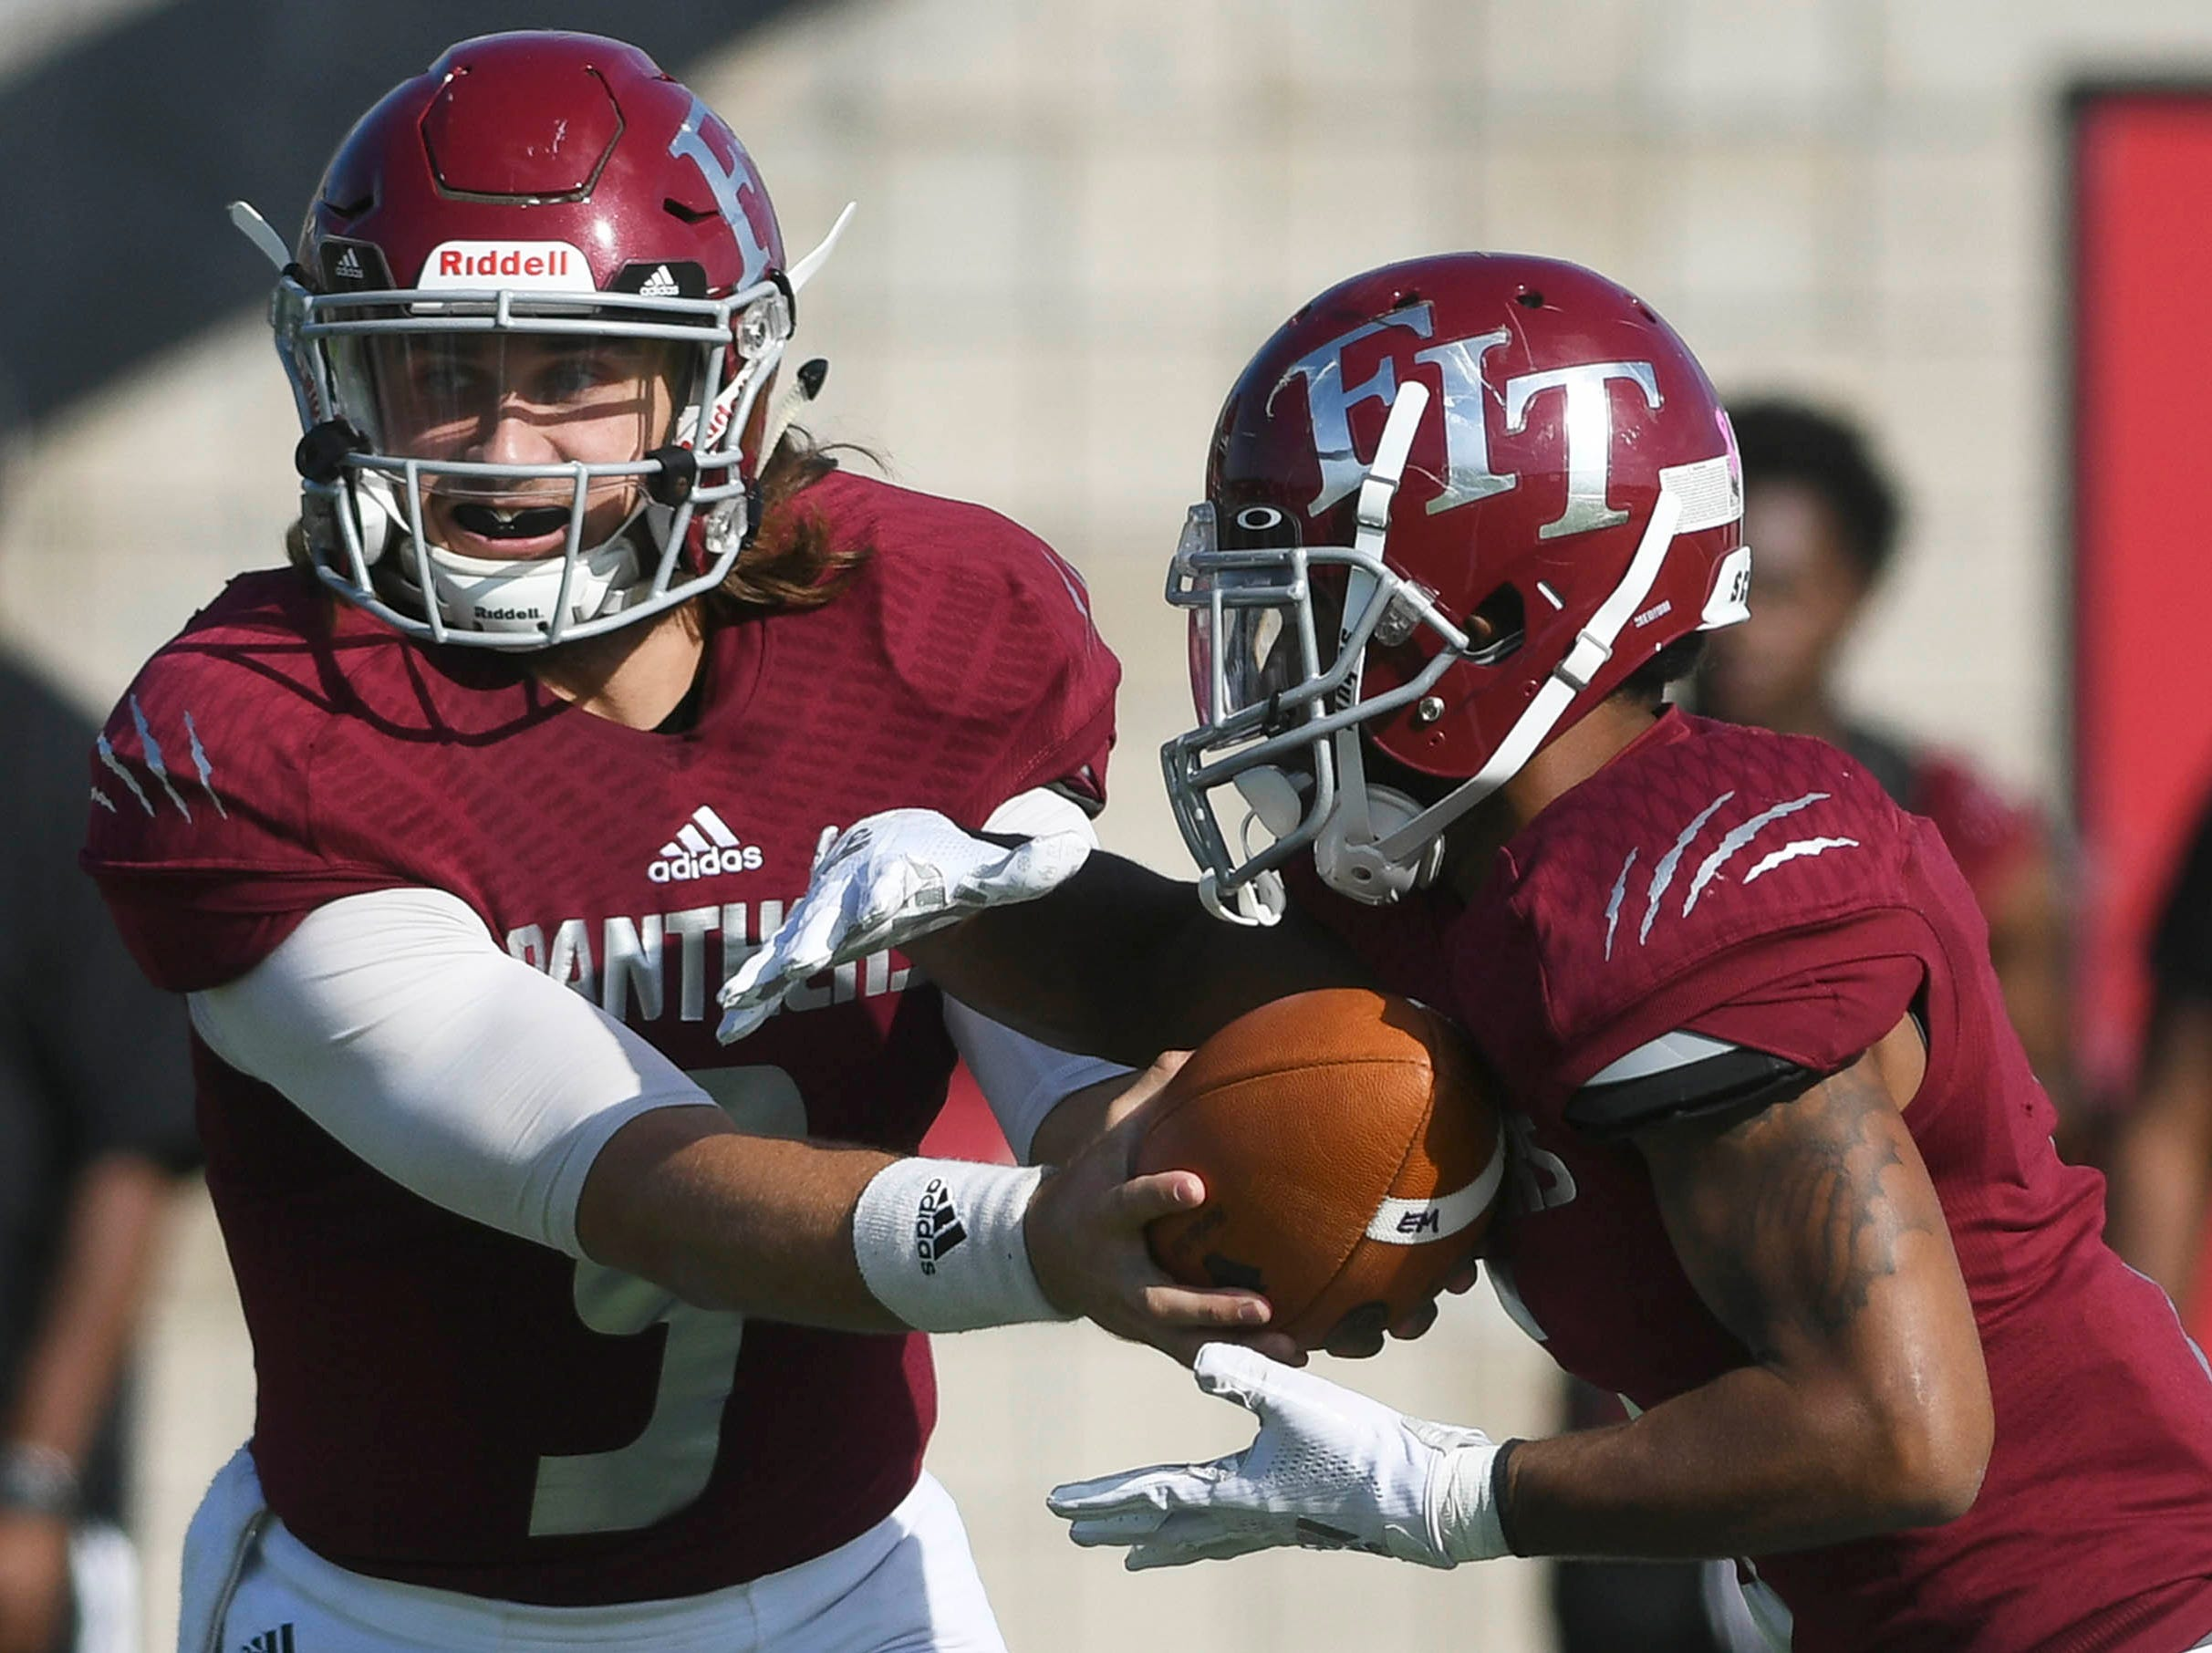 Florida Tech QB Trent Chmelik hands off to Antwuan Haynes during Saturday's game.